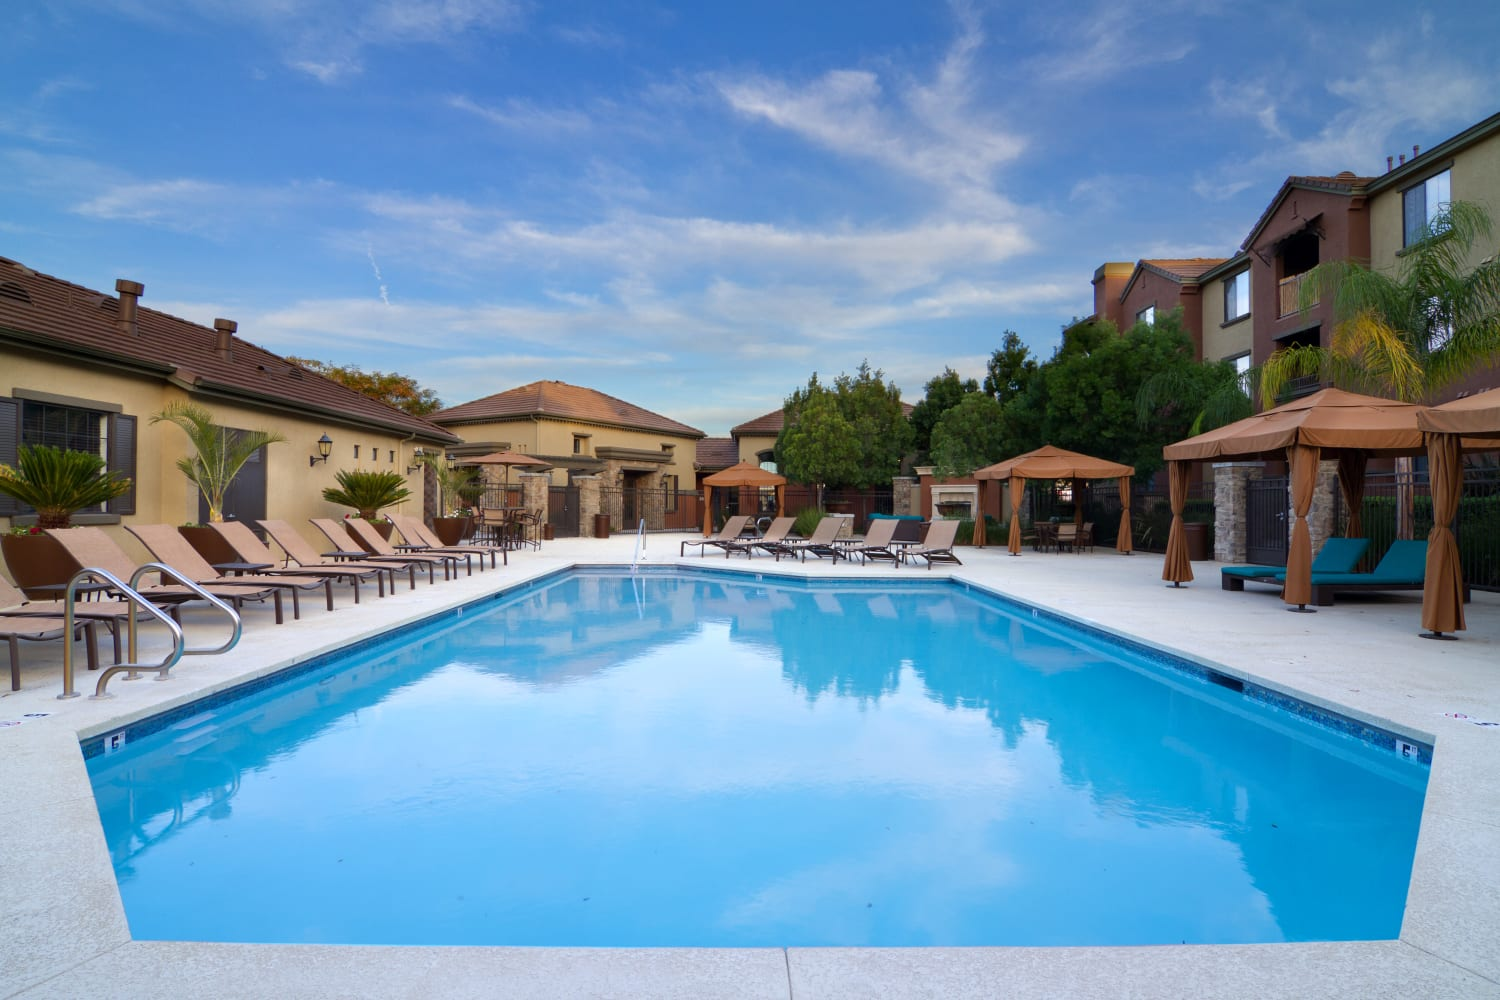 Swimming pool at Links at Westridge in Valencia, California